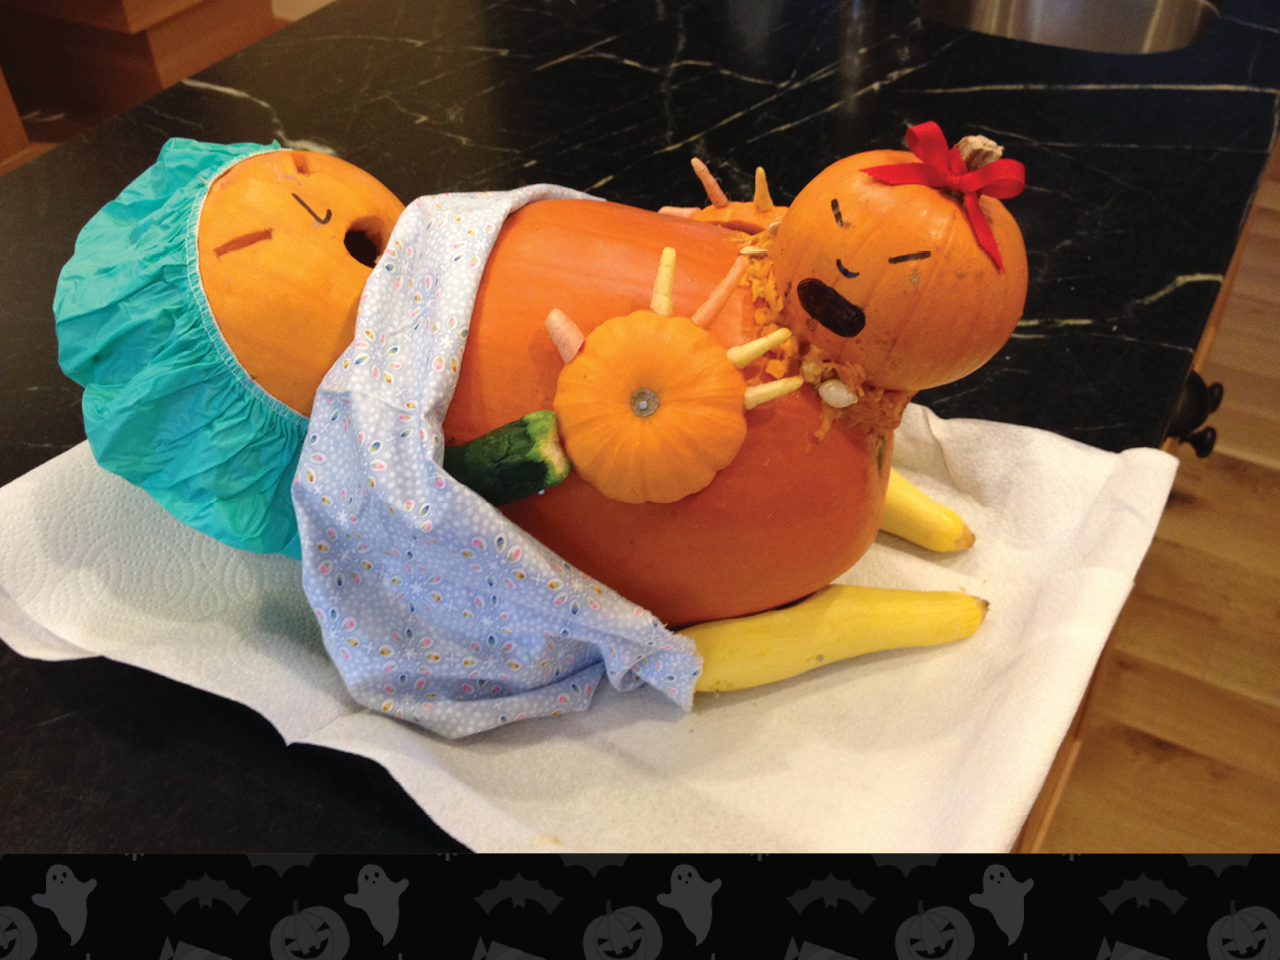 pumpkin carved as pregnant woman wearing hospital scrubs and giving birth